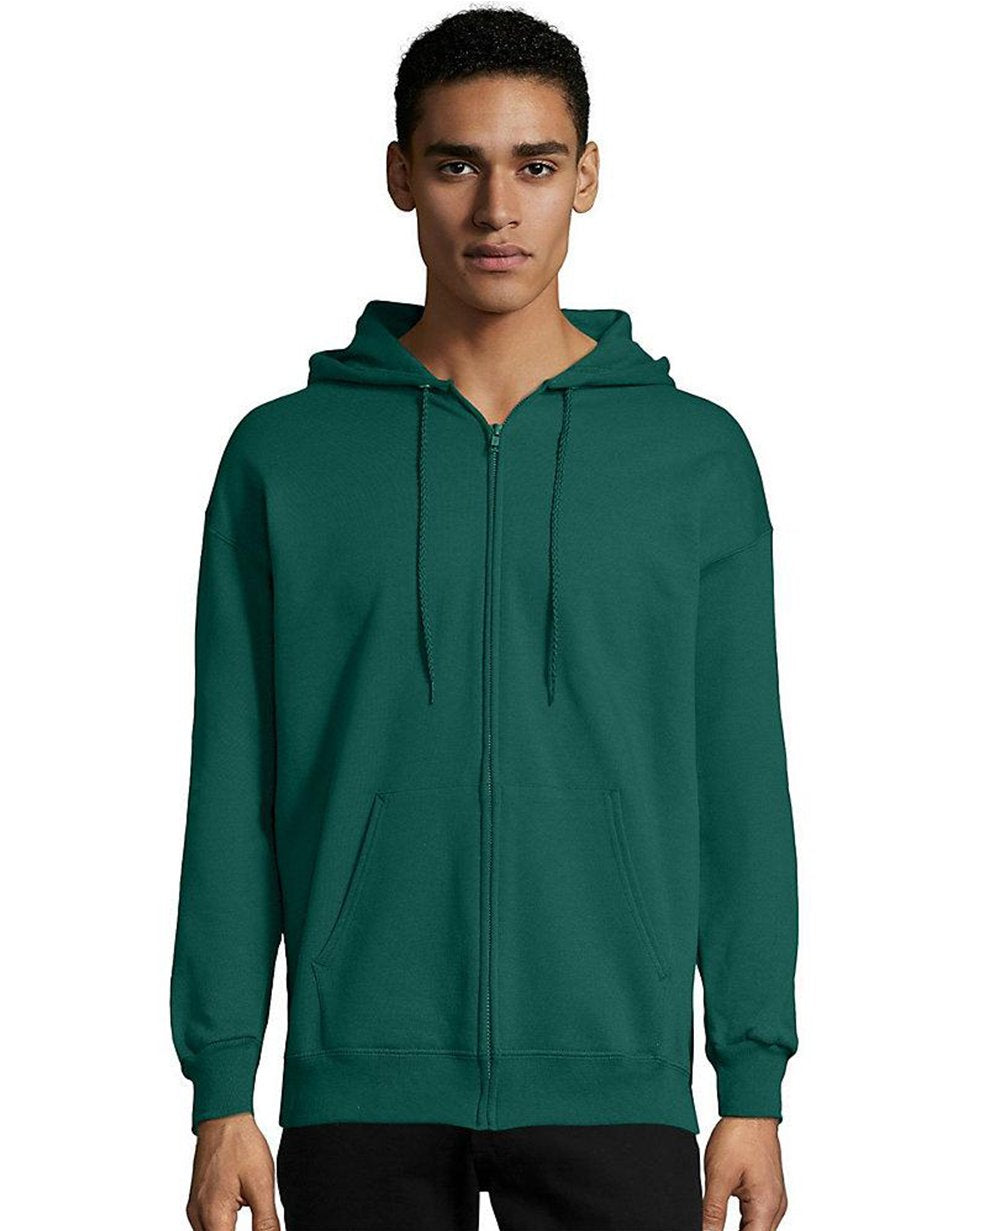 Zip-up Hoodie in Deep Forest